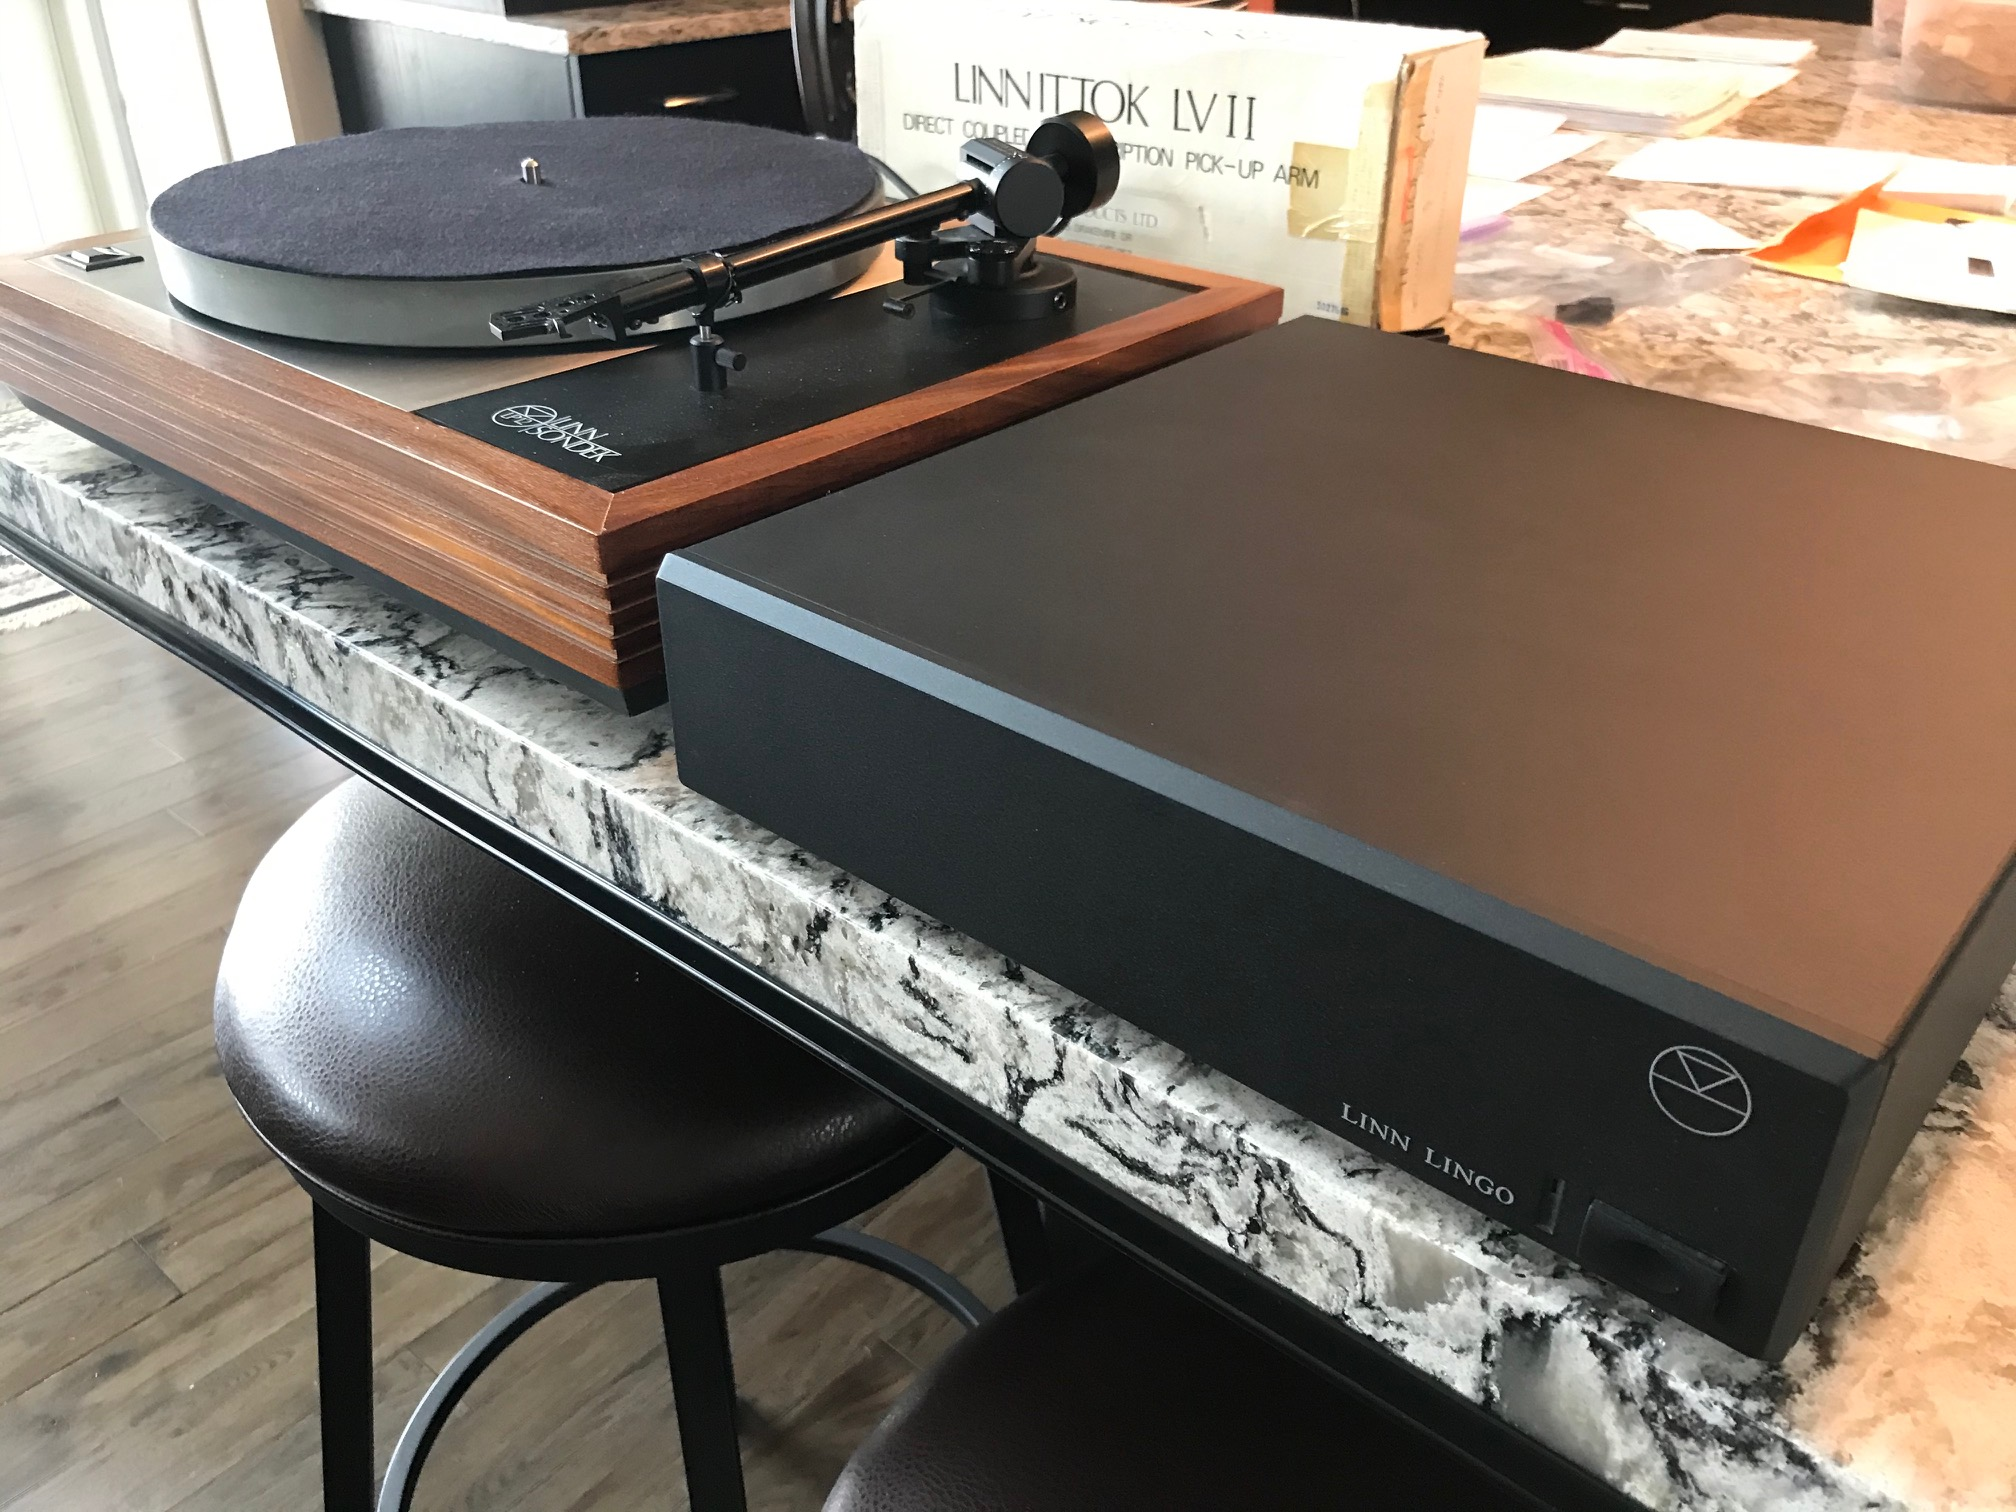 Linn LP12 With Ittok LV11 And Lingo PSU